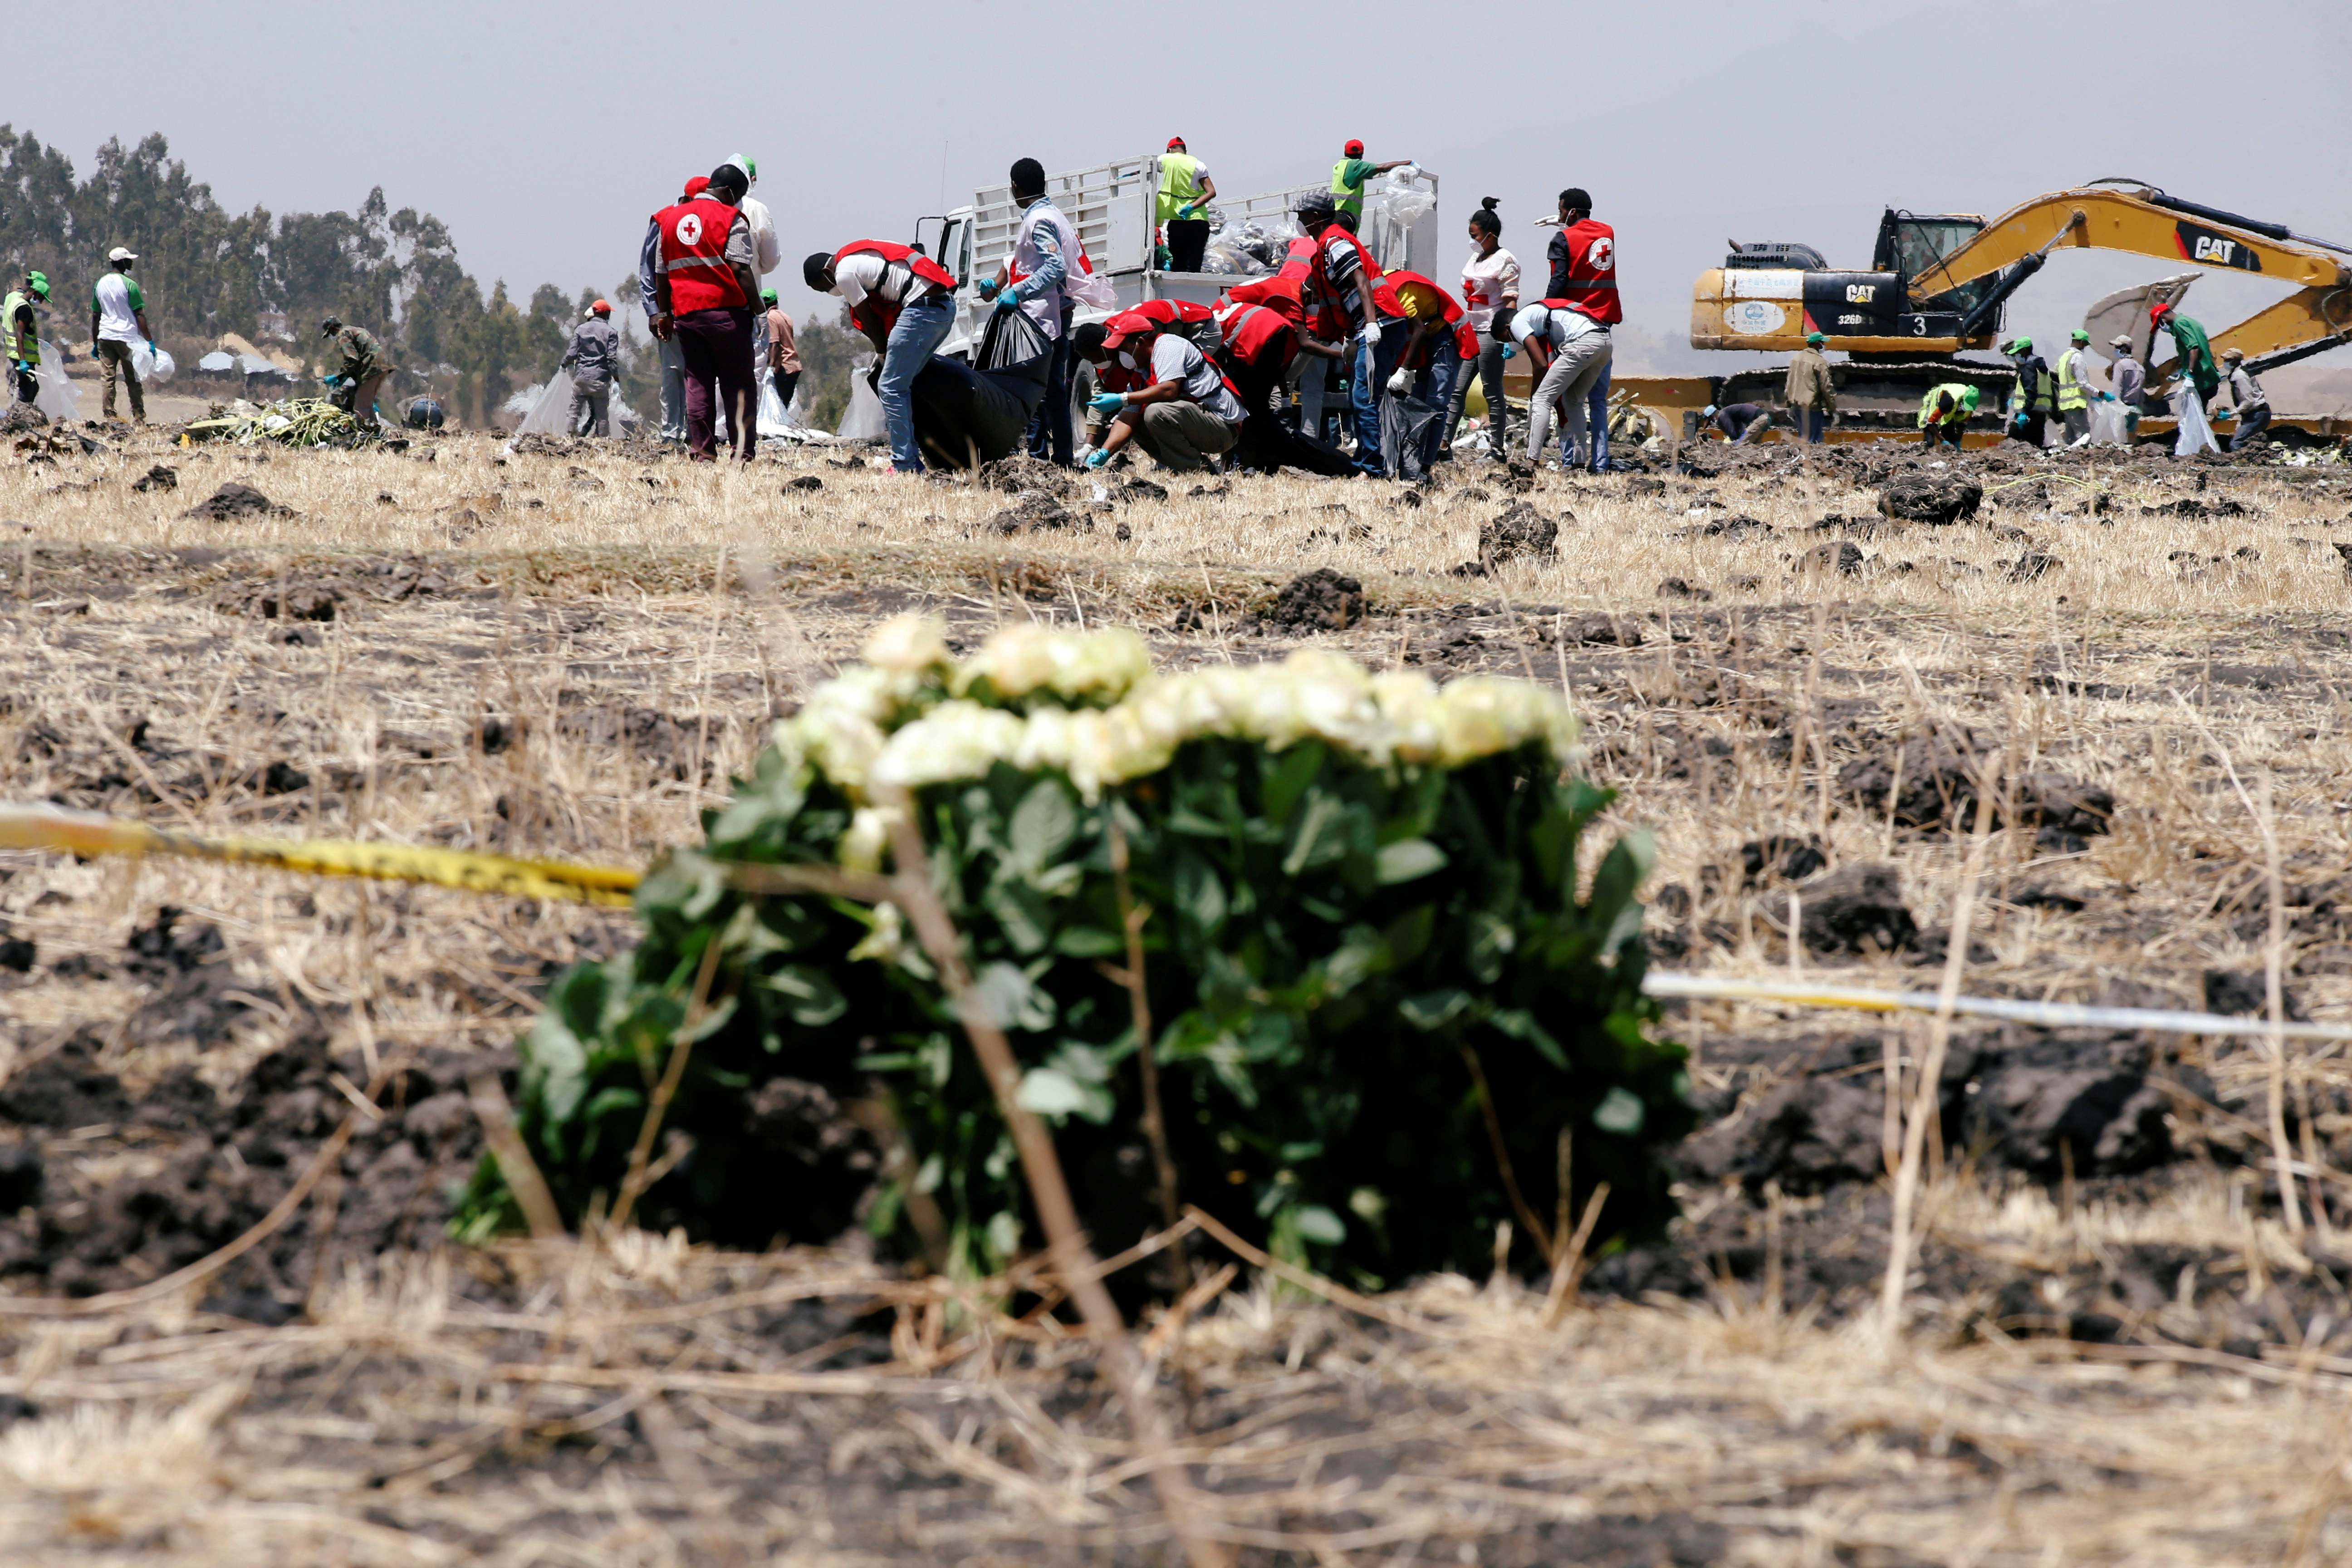 Members of the Ethiopian red cross search for remains at the Ethiopian Airlines Flight ET 302 plane crash before a commemoration ceremony at the scene of the crash, near the town of Bishoftu, southeast of Addis Ababa, Ethiopia March 13, 2019. REUTERS/Baz Ratner